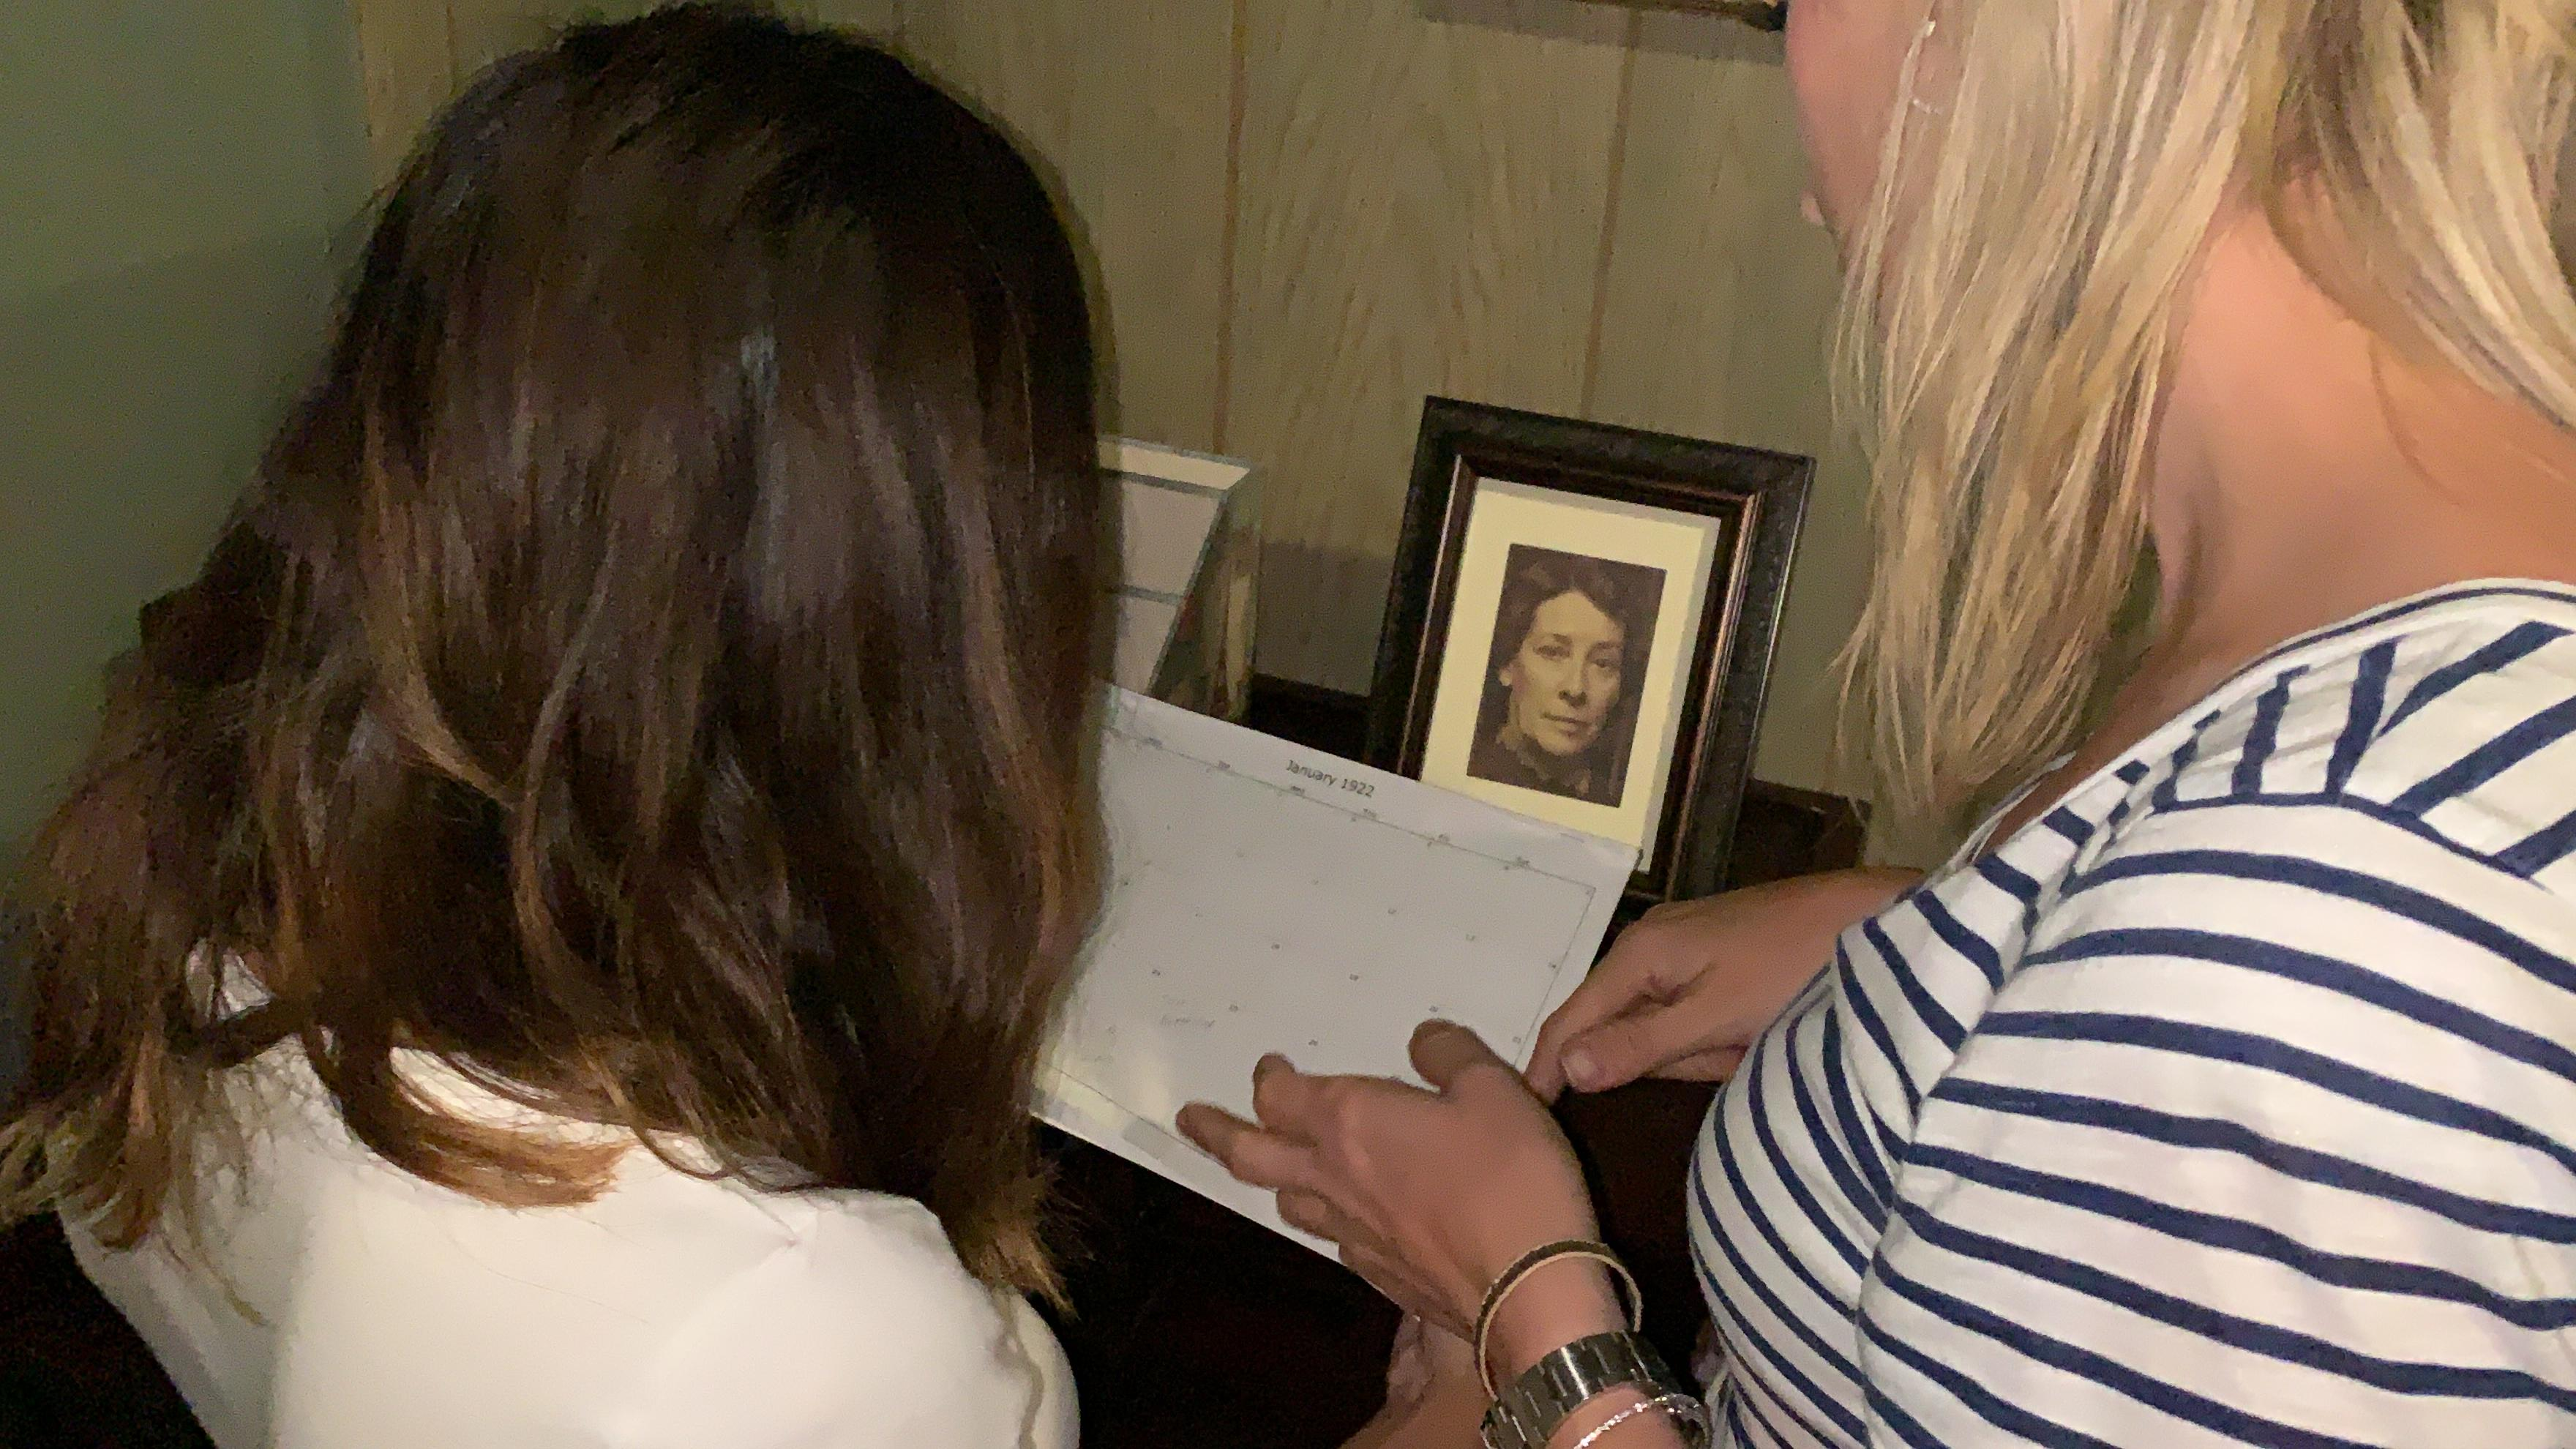 Step inside 'Downton Abbey' in new mystery escape room in Utah. (Photo: Adam Forgie, KUTV)